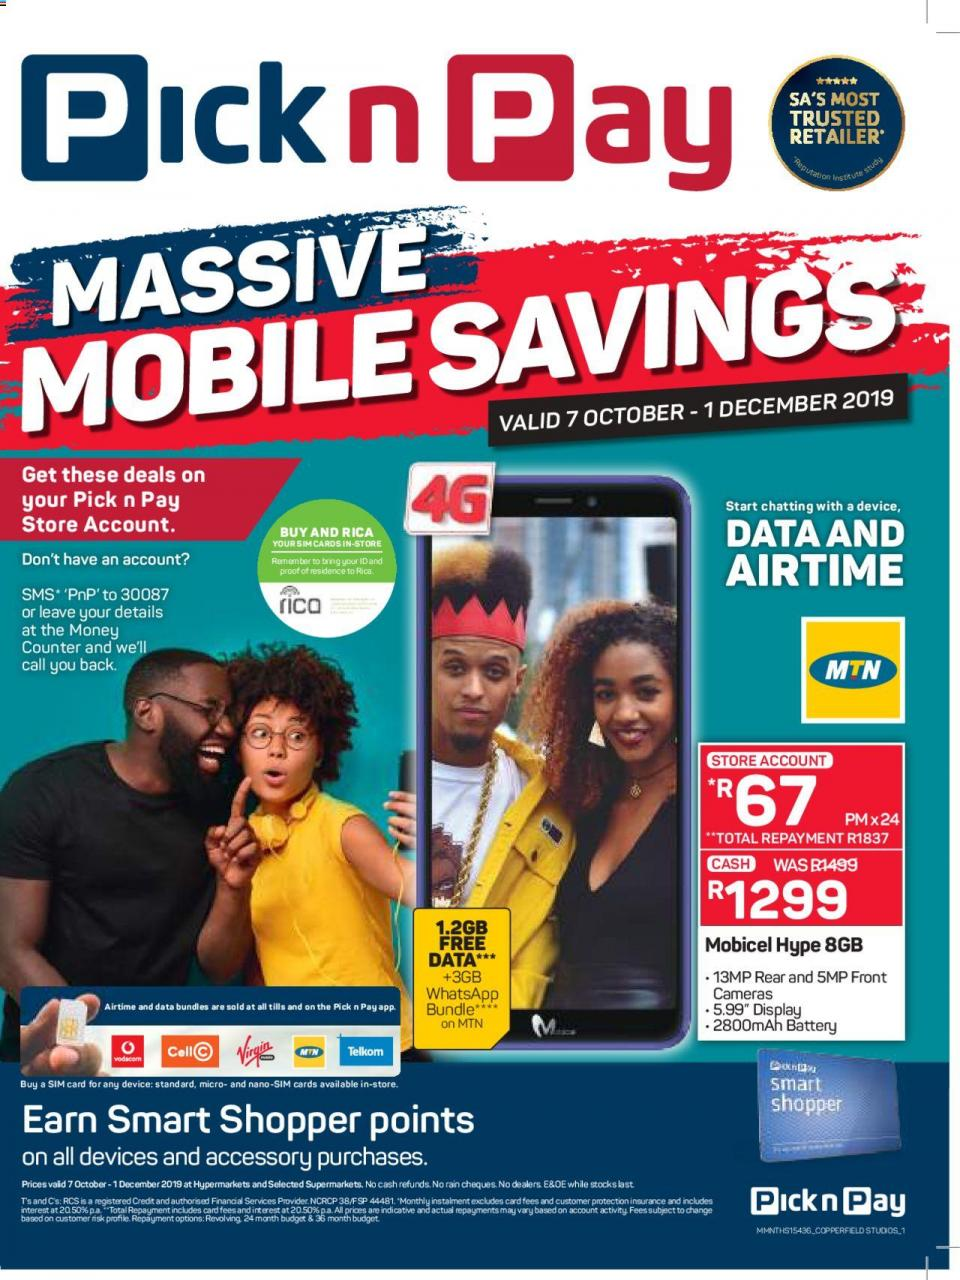 pick n pay specials massive mobile savings 07 october 2019